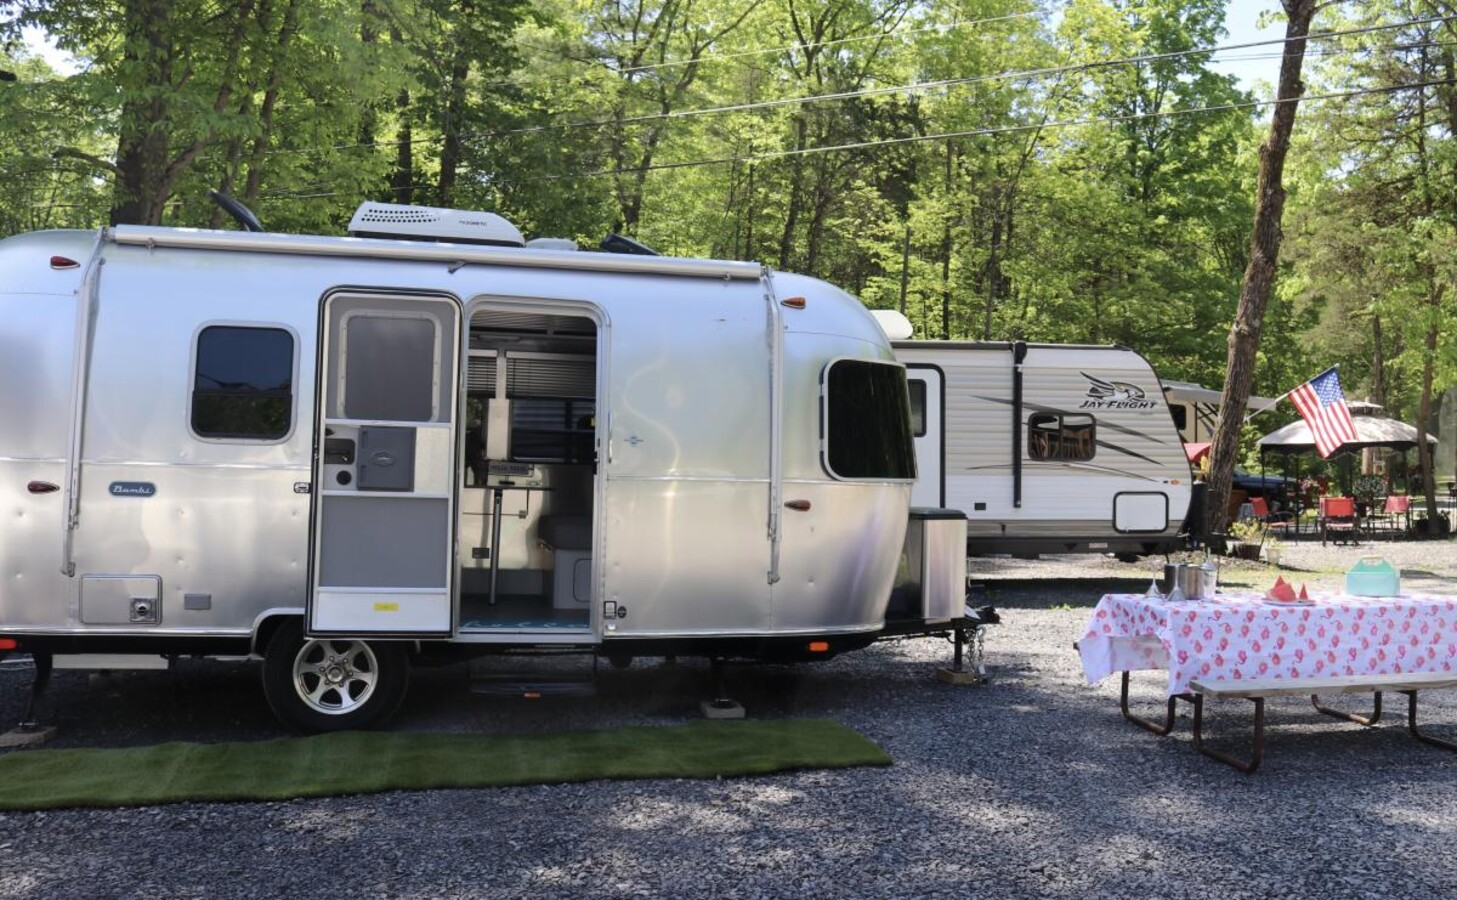 Airstream and camper parked at campgrounds